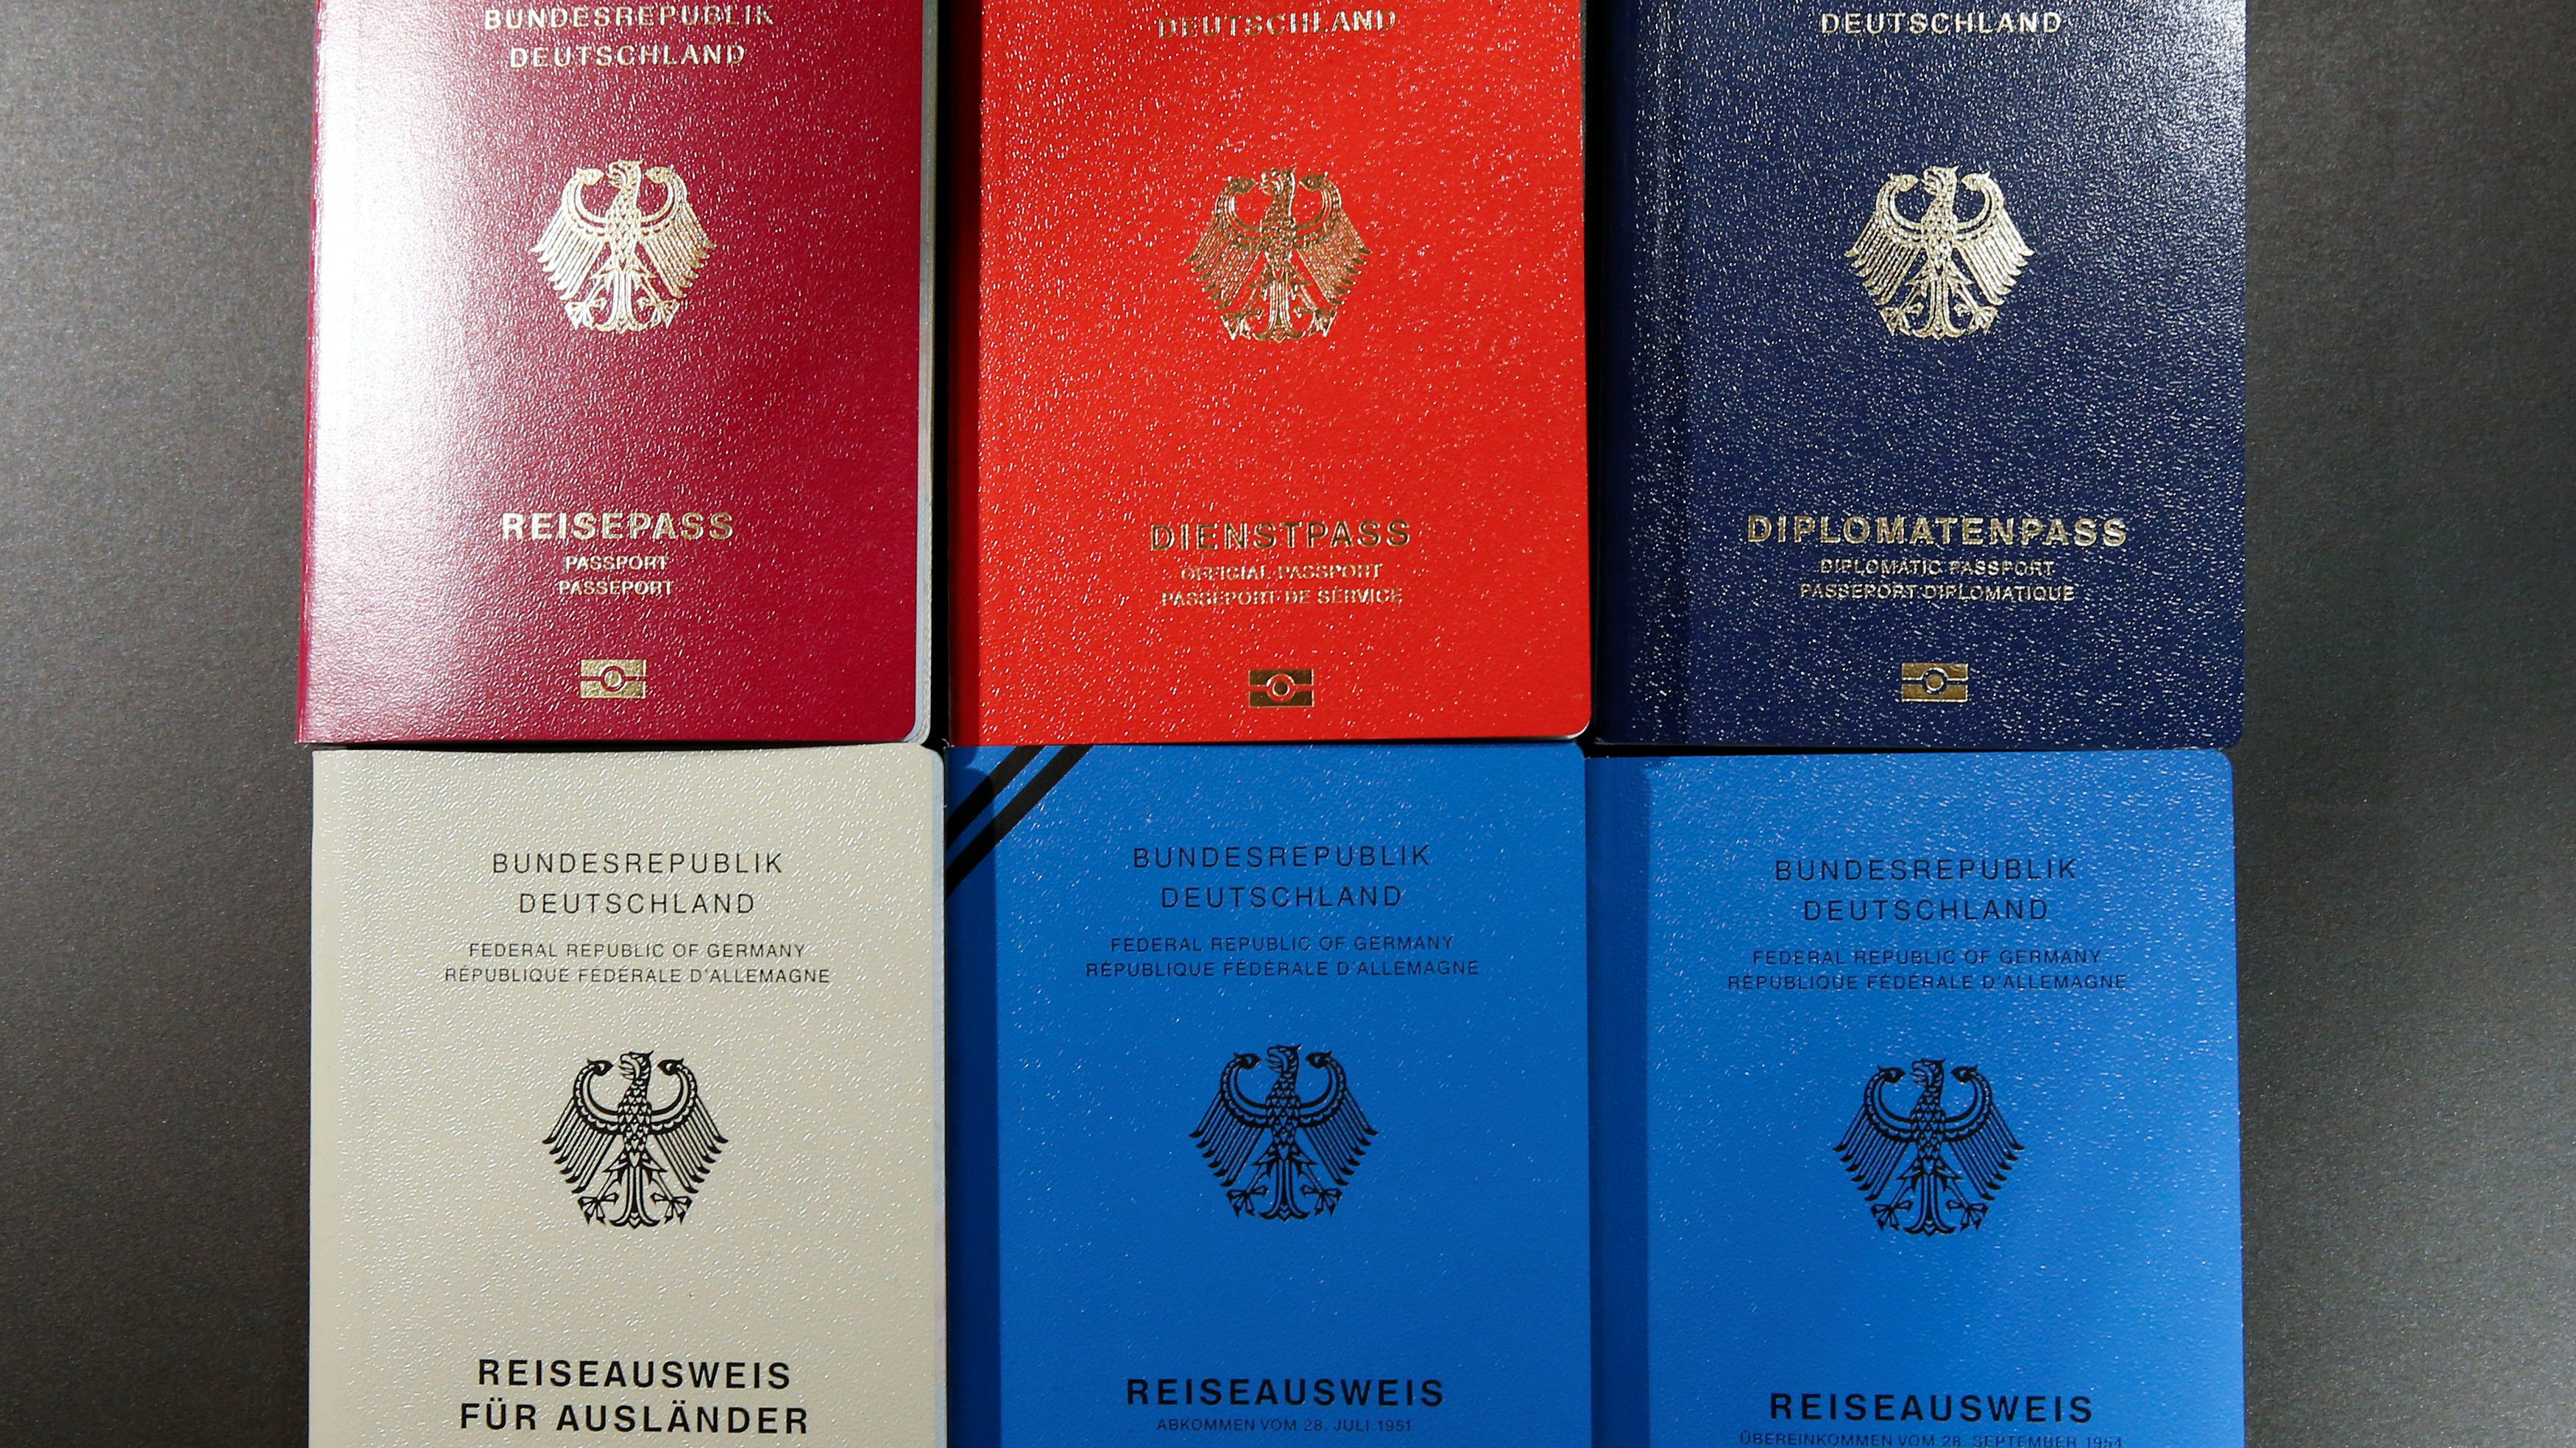 Specimens of German new electronic passports are pictured during a presentation to the media in Berlin, Germany, February 23, 2017.     REUTERS/Fabrizio Bensch - RC1448508130